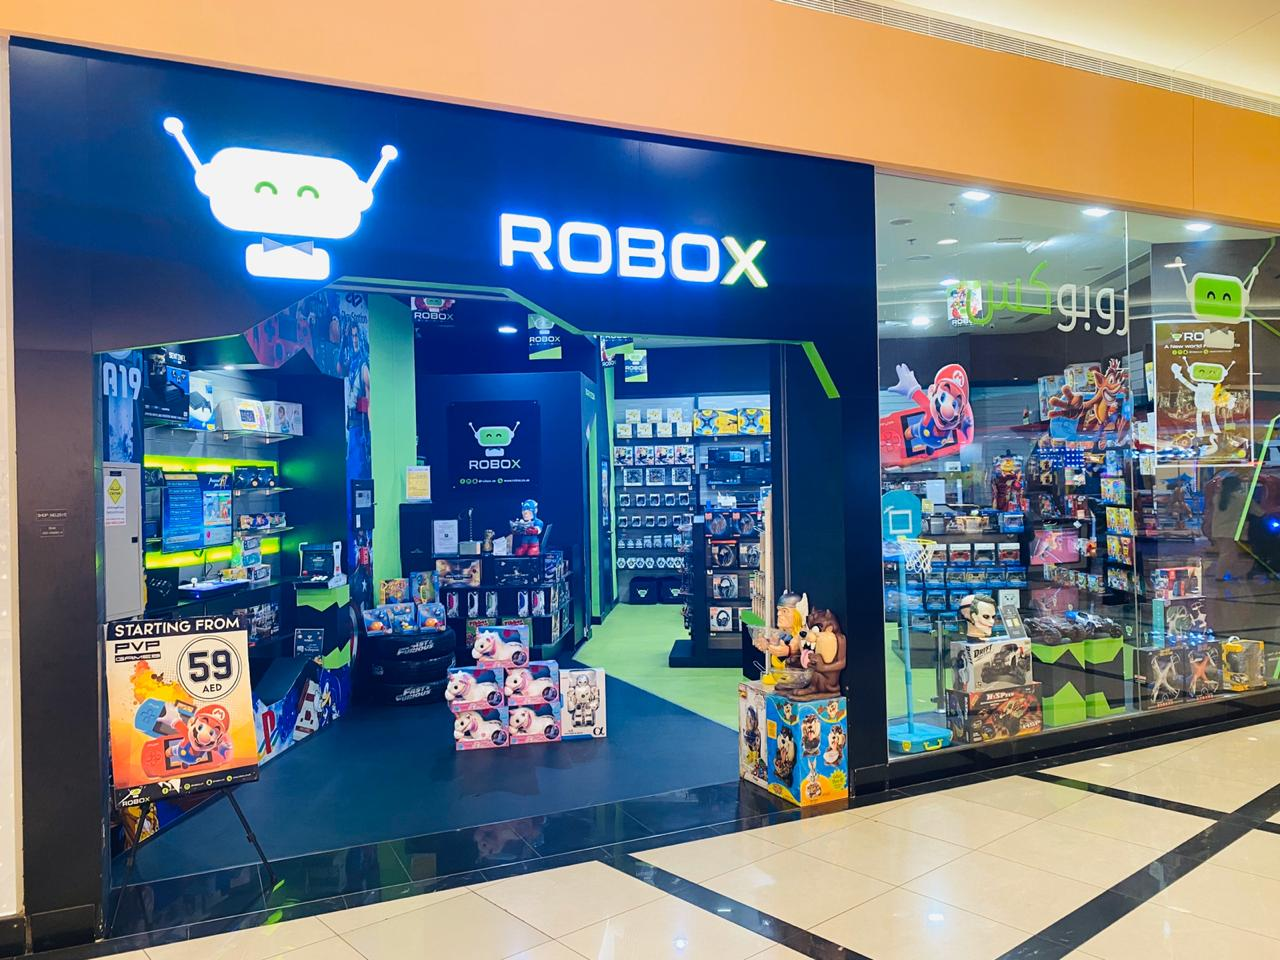 Retail_Gaming_and_Toys_Showroom_Business_in_a_Mall_in_Dubai_for_Sale_17920206219